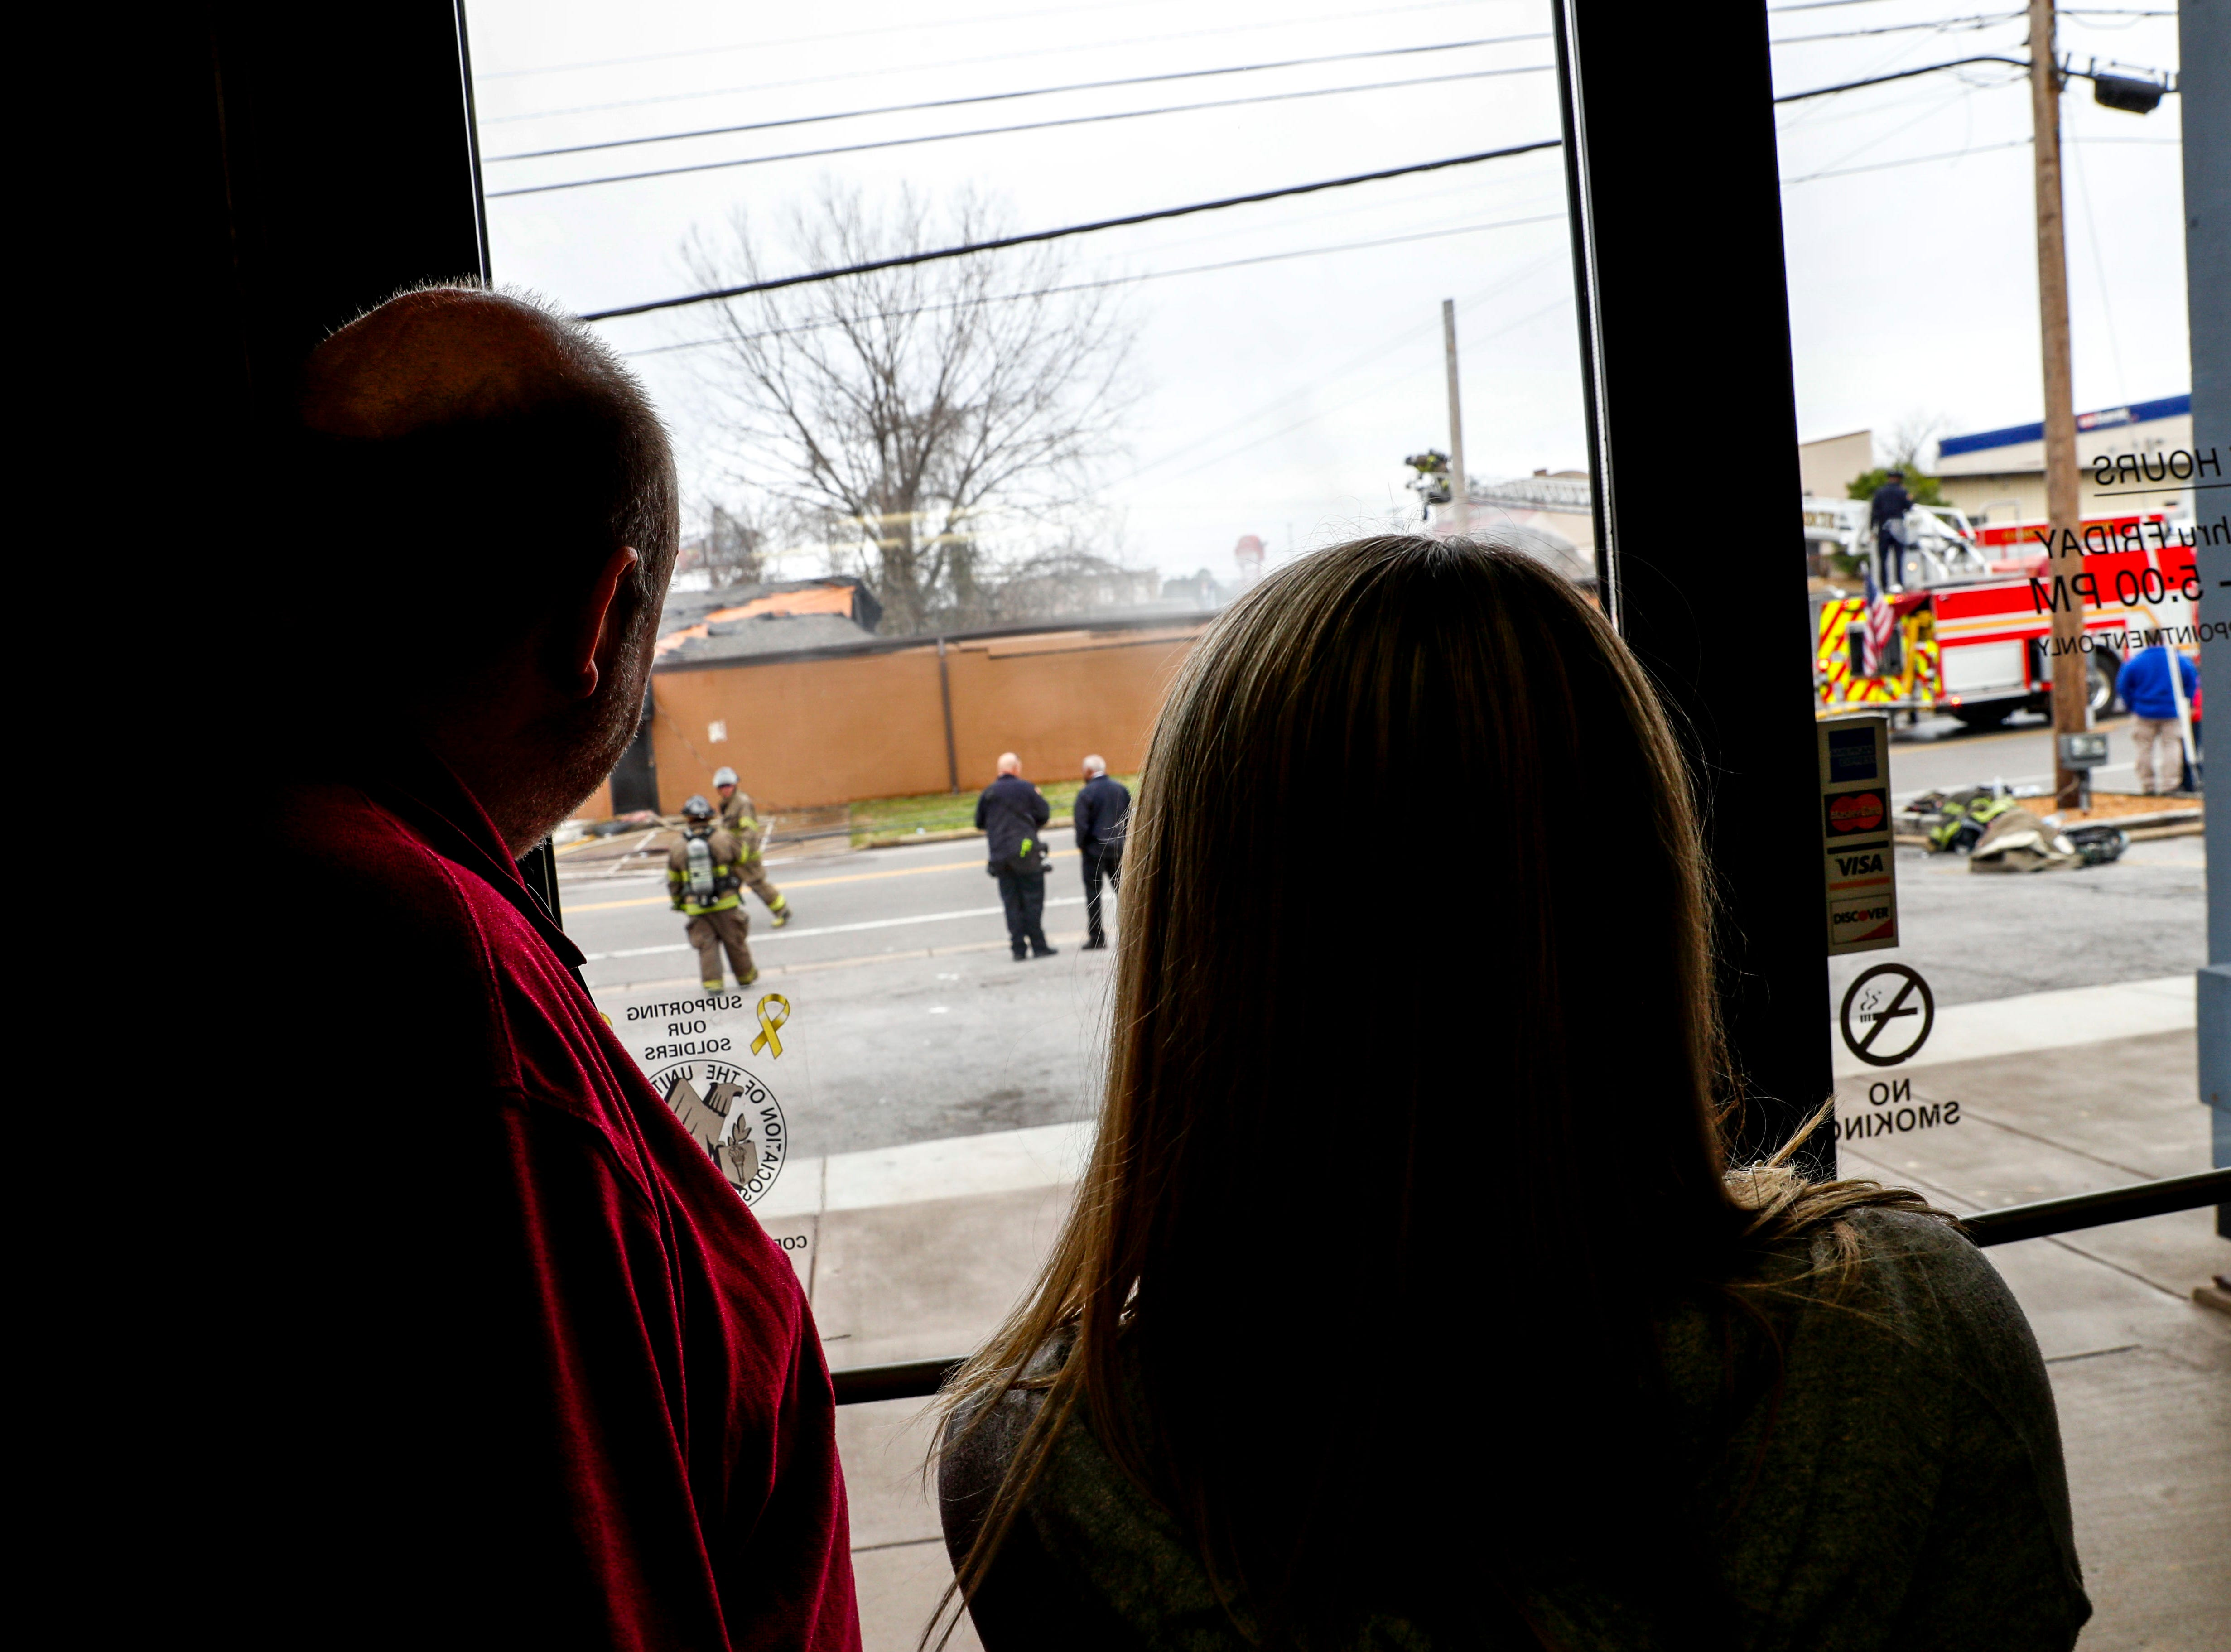 Employees of Thomas Lumber Co across the street watch as Clarksville Fire Rescue responders work to put out the fire at Clarksville Guns & Archery in Clarksville, Tenn., on Tuesday, March 12, 2019.